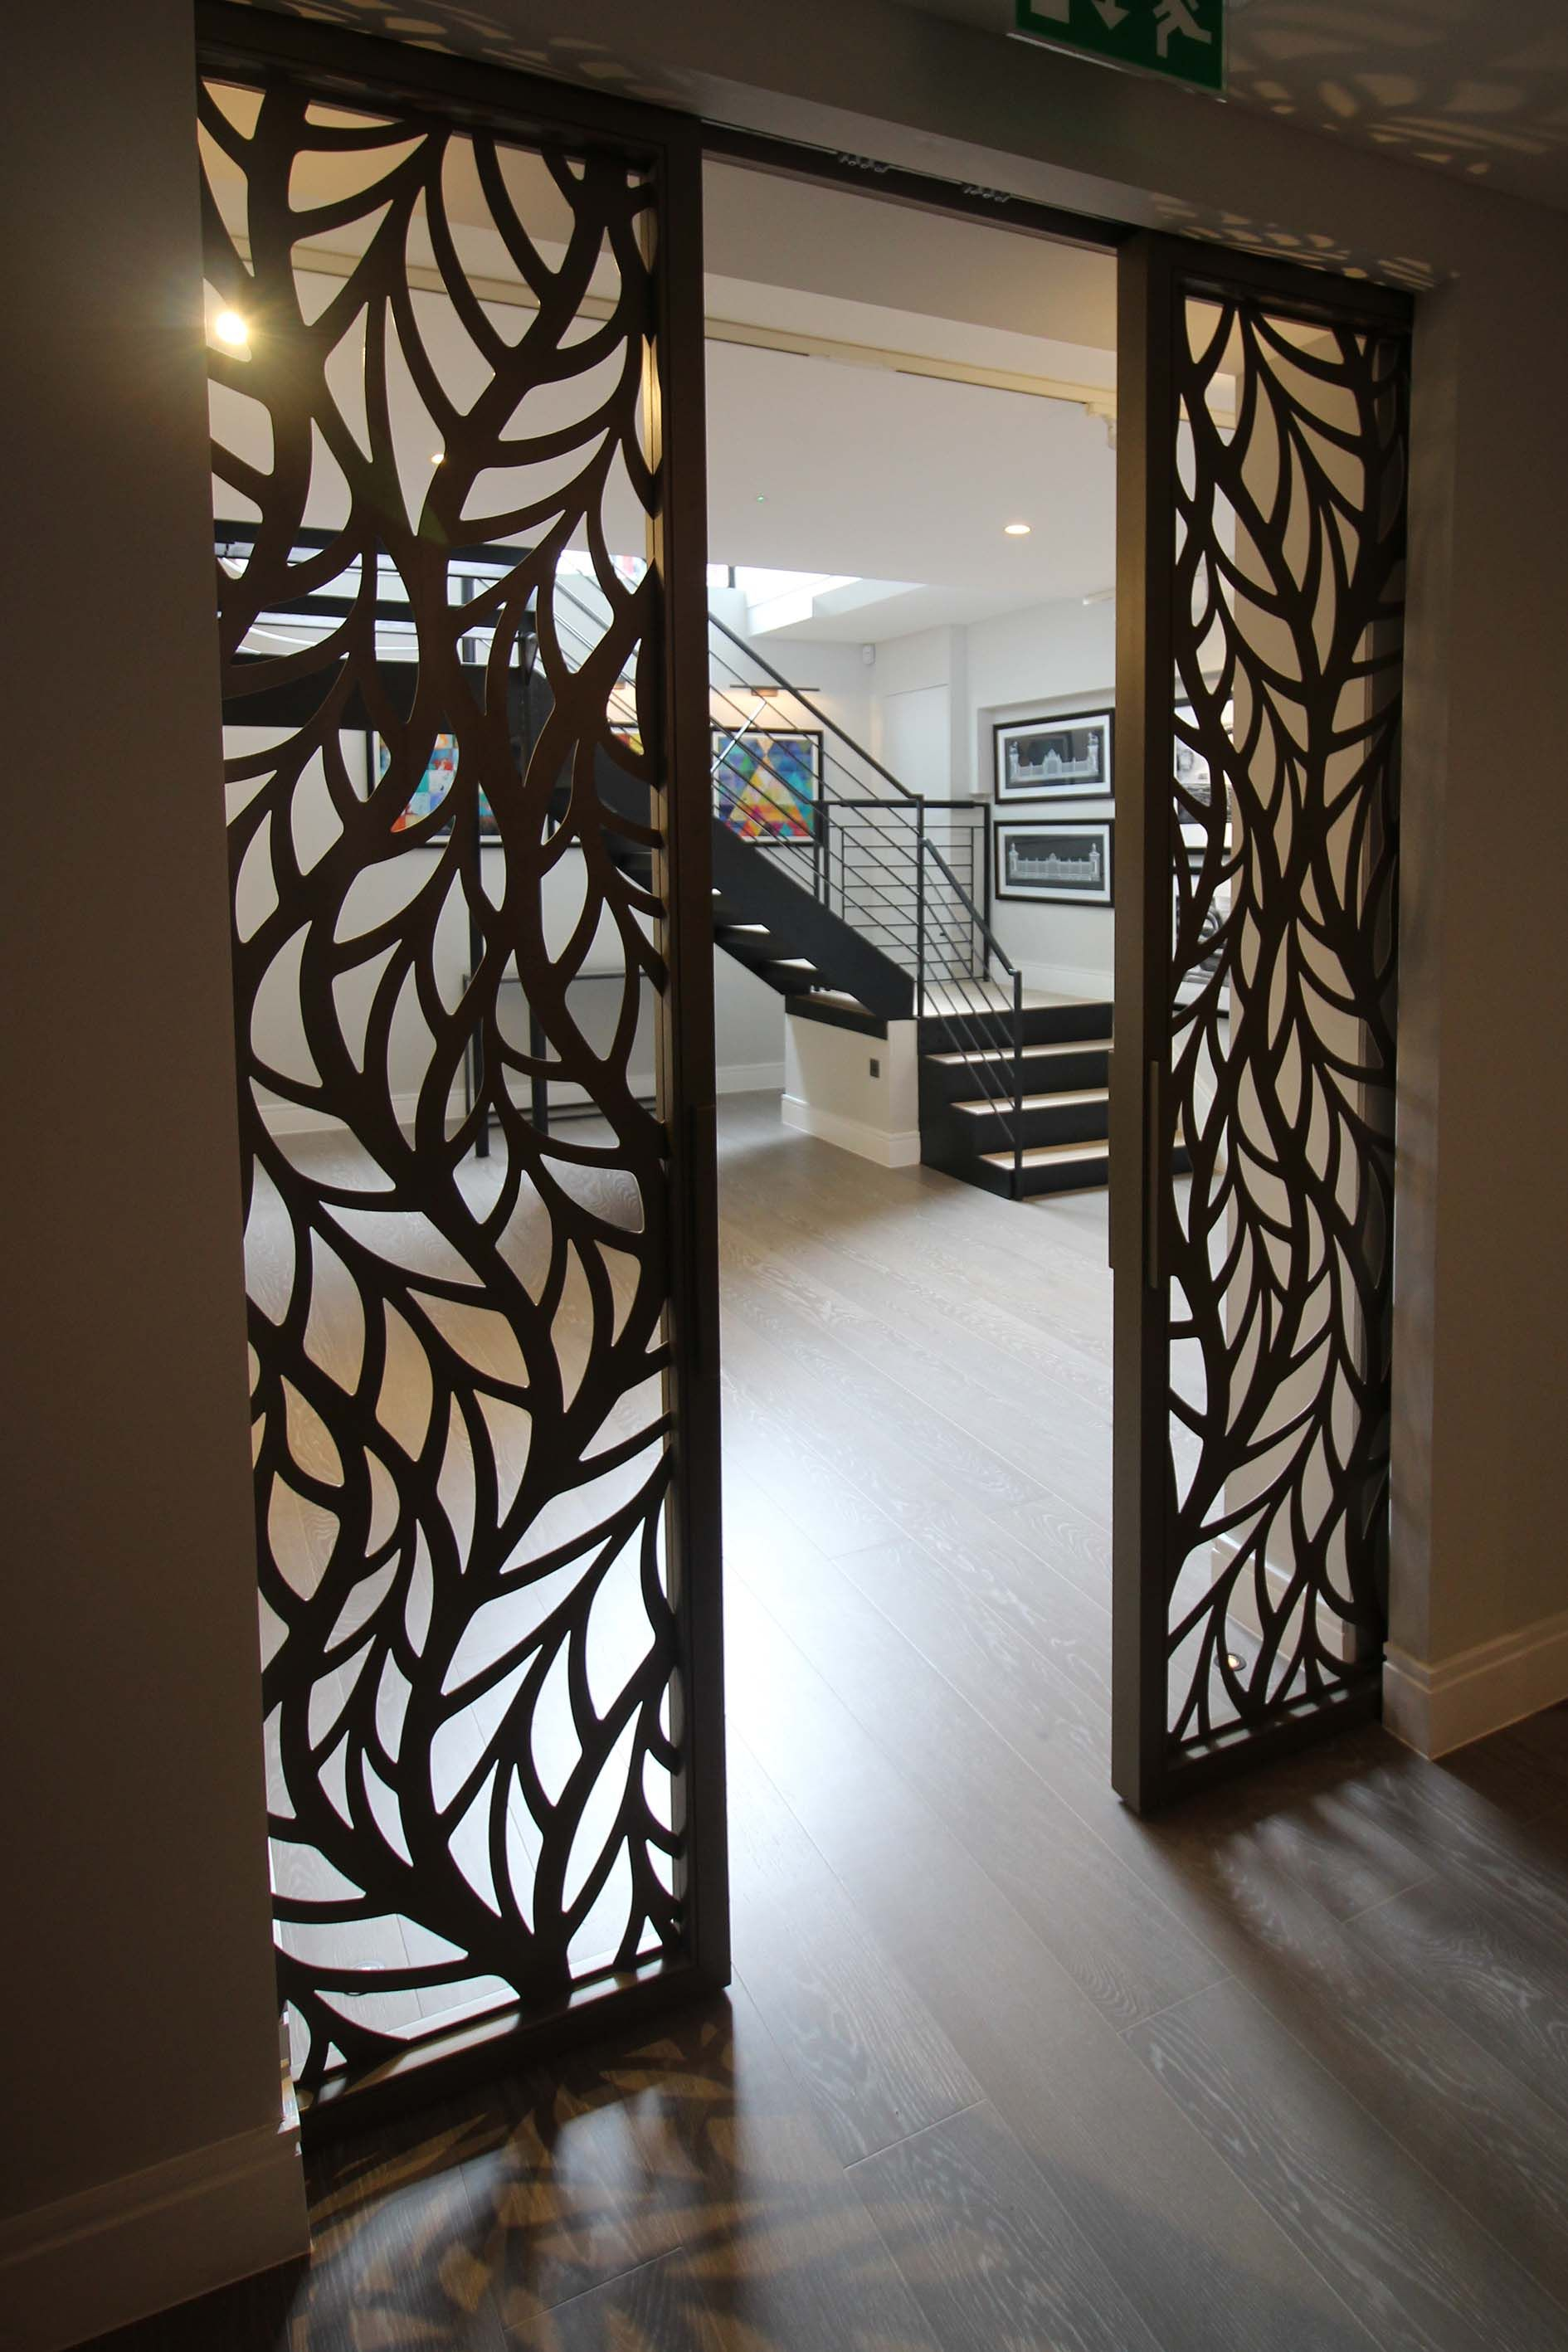 Silian art gallery london laser cut sliding doors frond for Acrylic vs glass windows